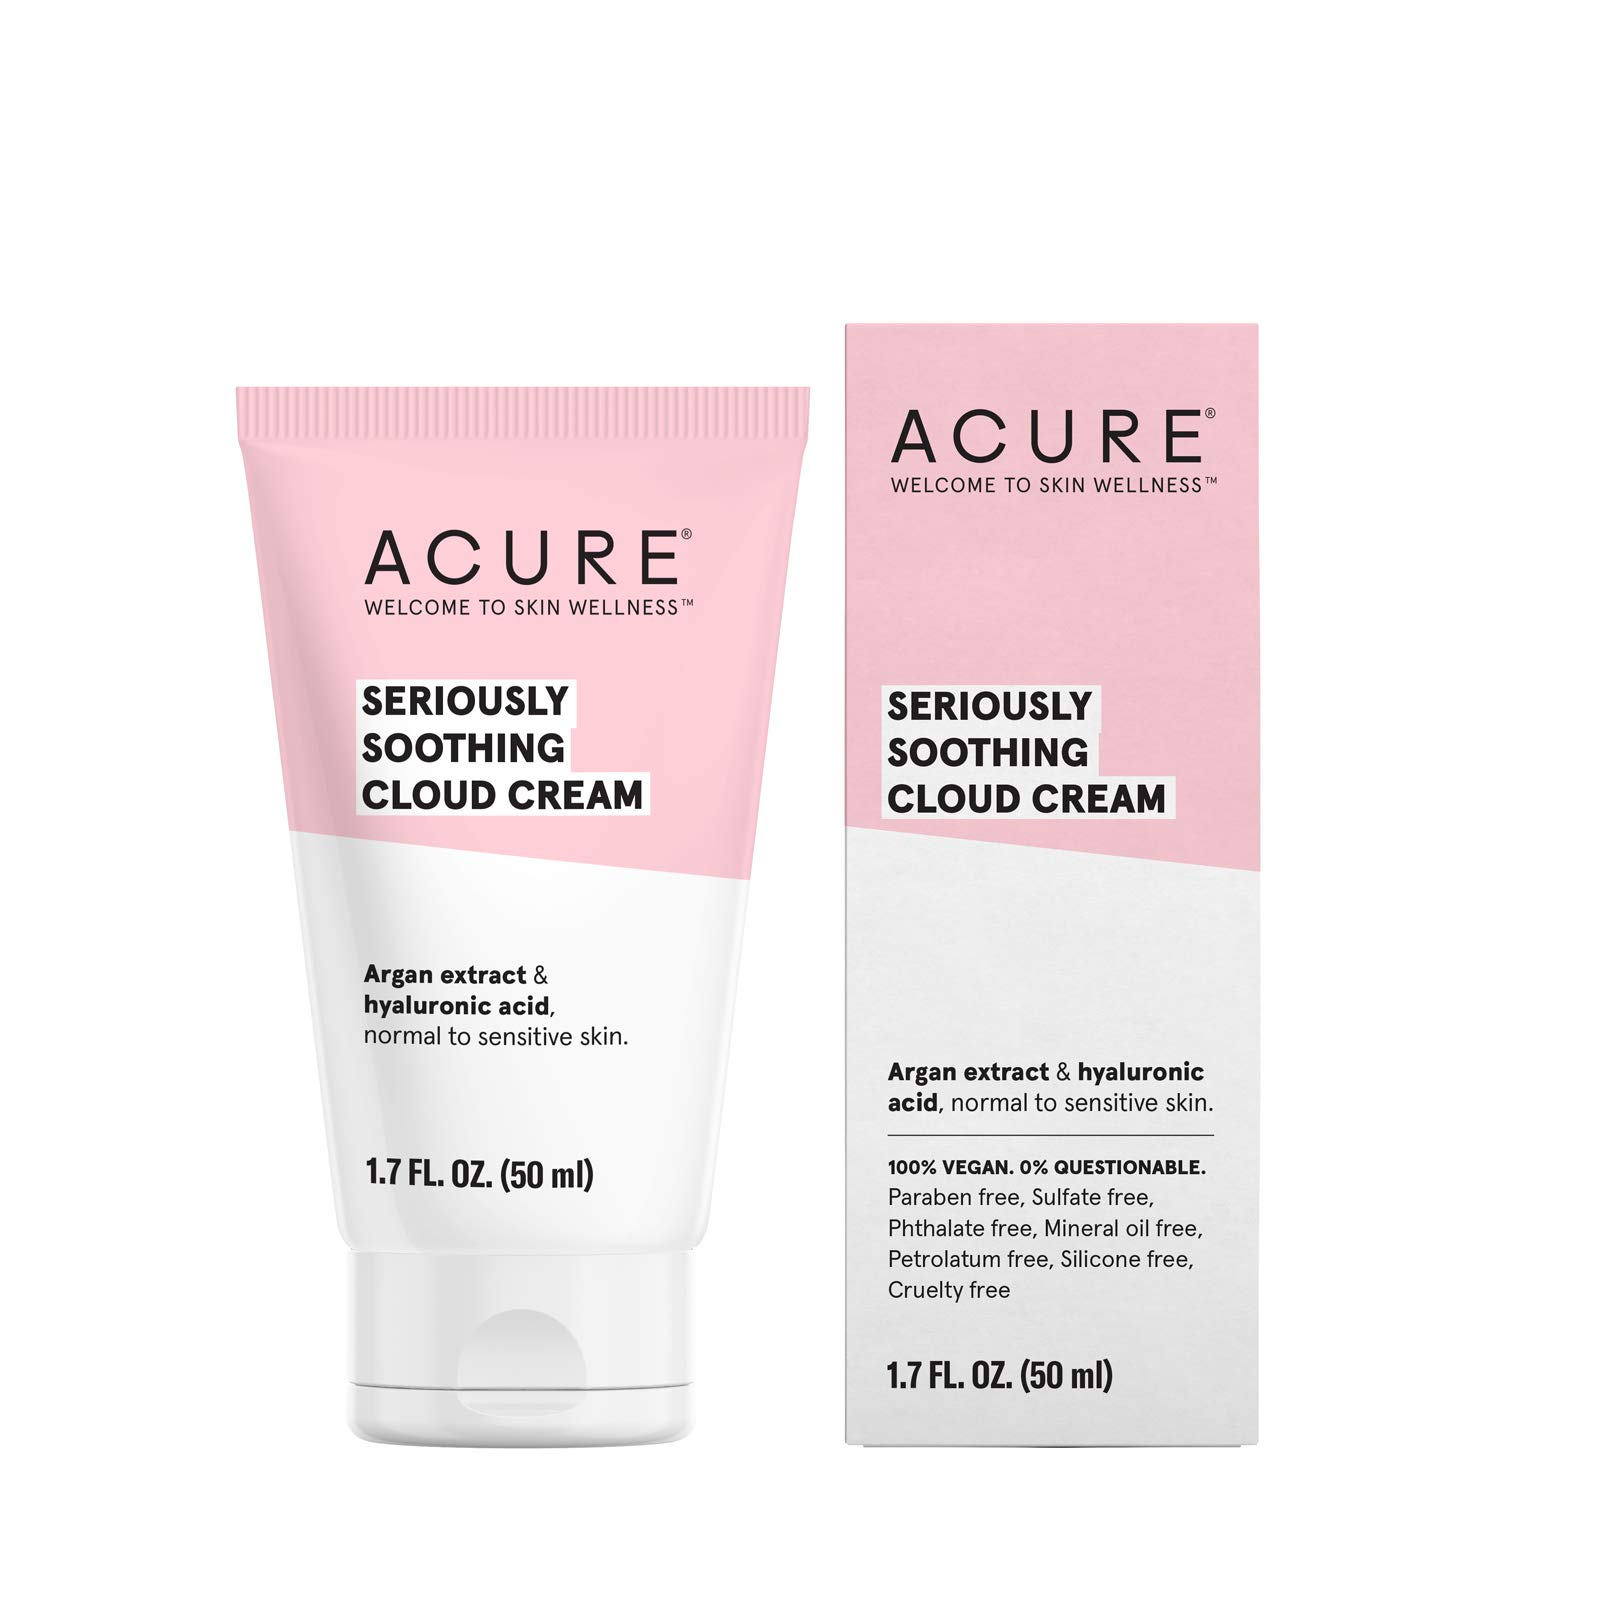 Amazon.com: ACURE Seriously Soothing Day Cream, 1.7 Fl. Oz